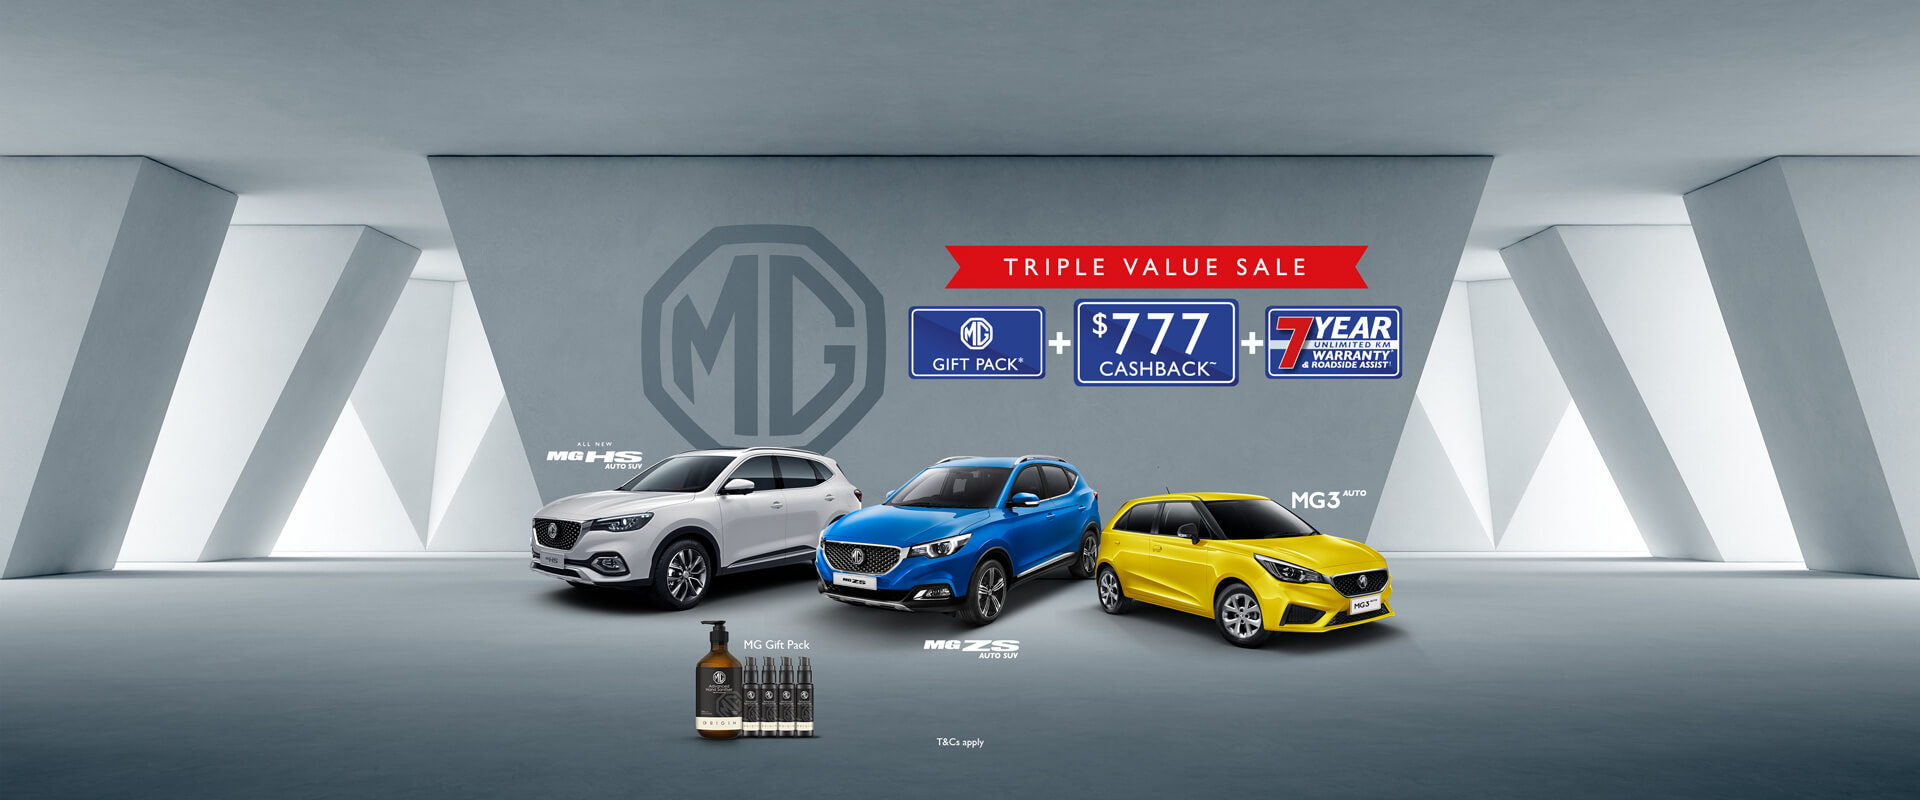 MG Triple Value Sale